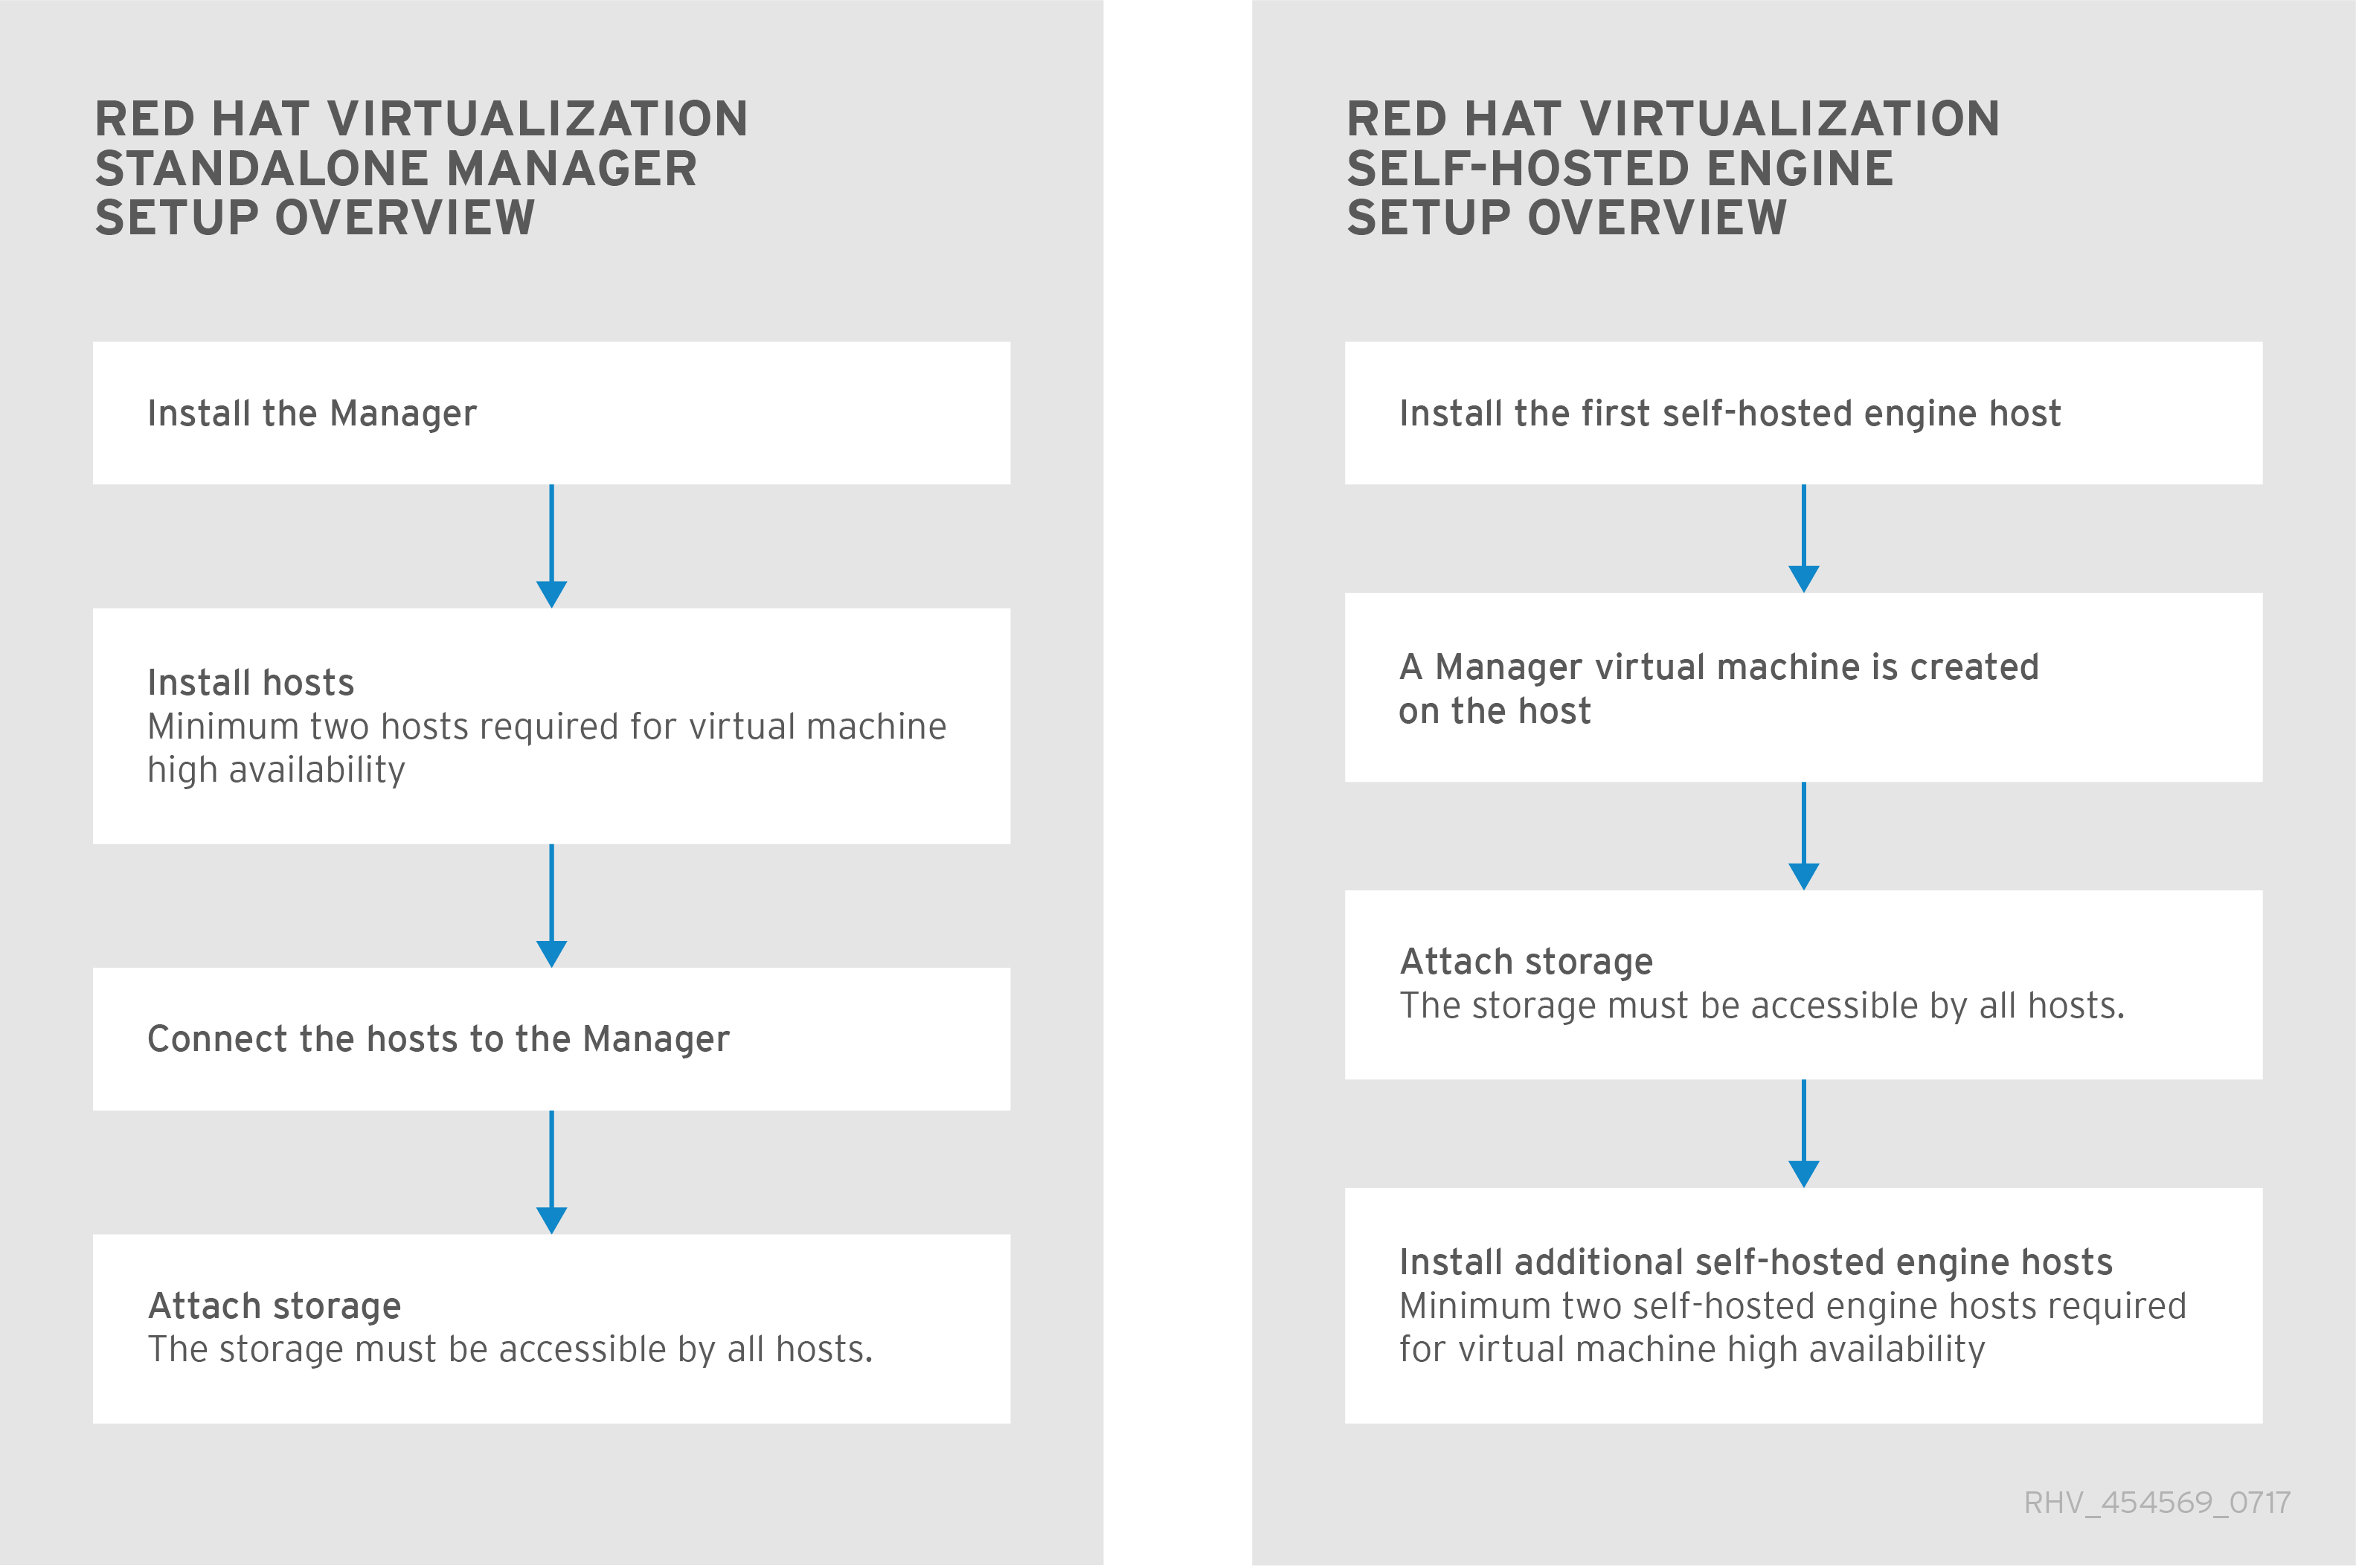 Setup Overview of Red Hat Virtualization